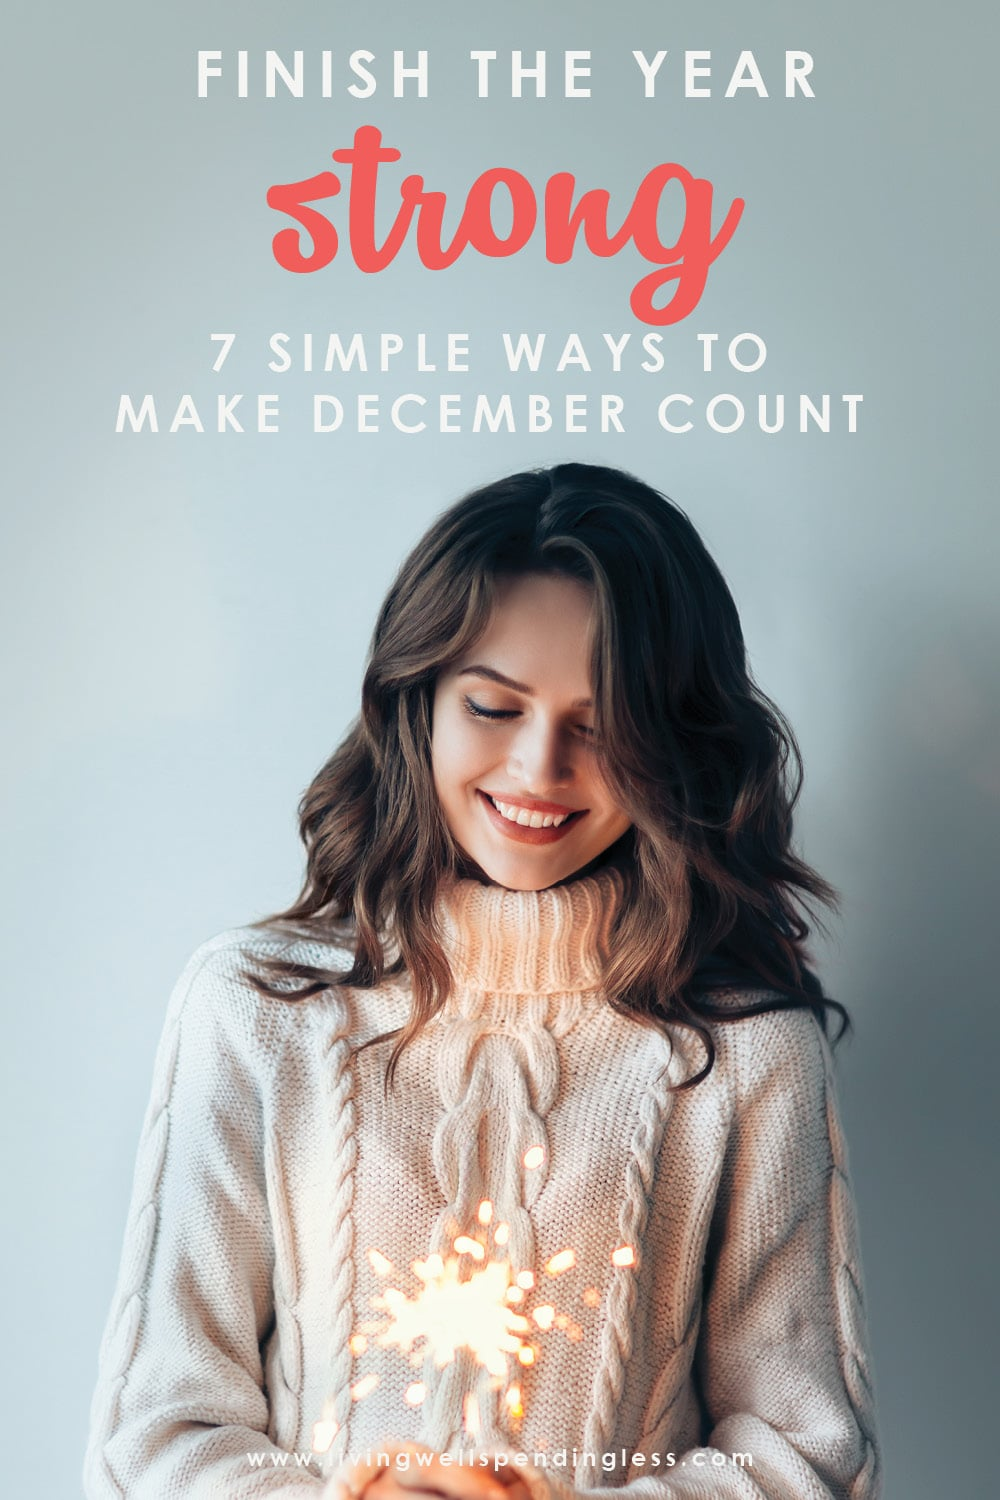 End of the year leave you feeling defeated, stressed out, and overwhelmed? Here are 7 simple ways to finish the year strong! #holidays #productivity #mindset #positivity #timemanagement #timemanagementtips #productivitytips